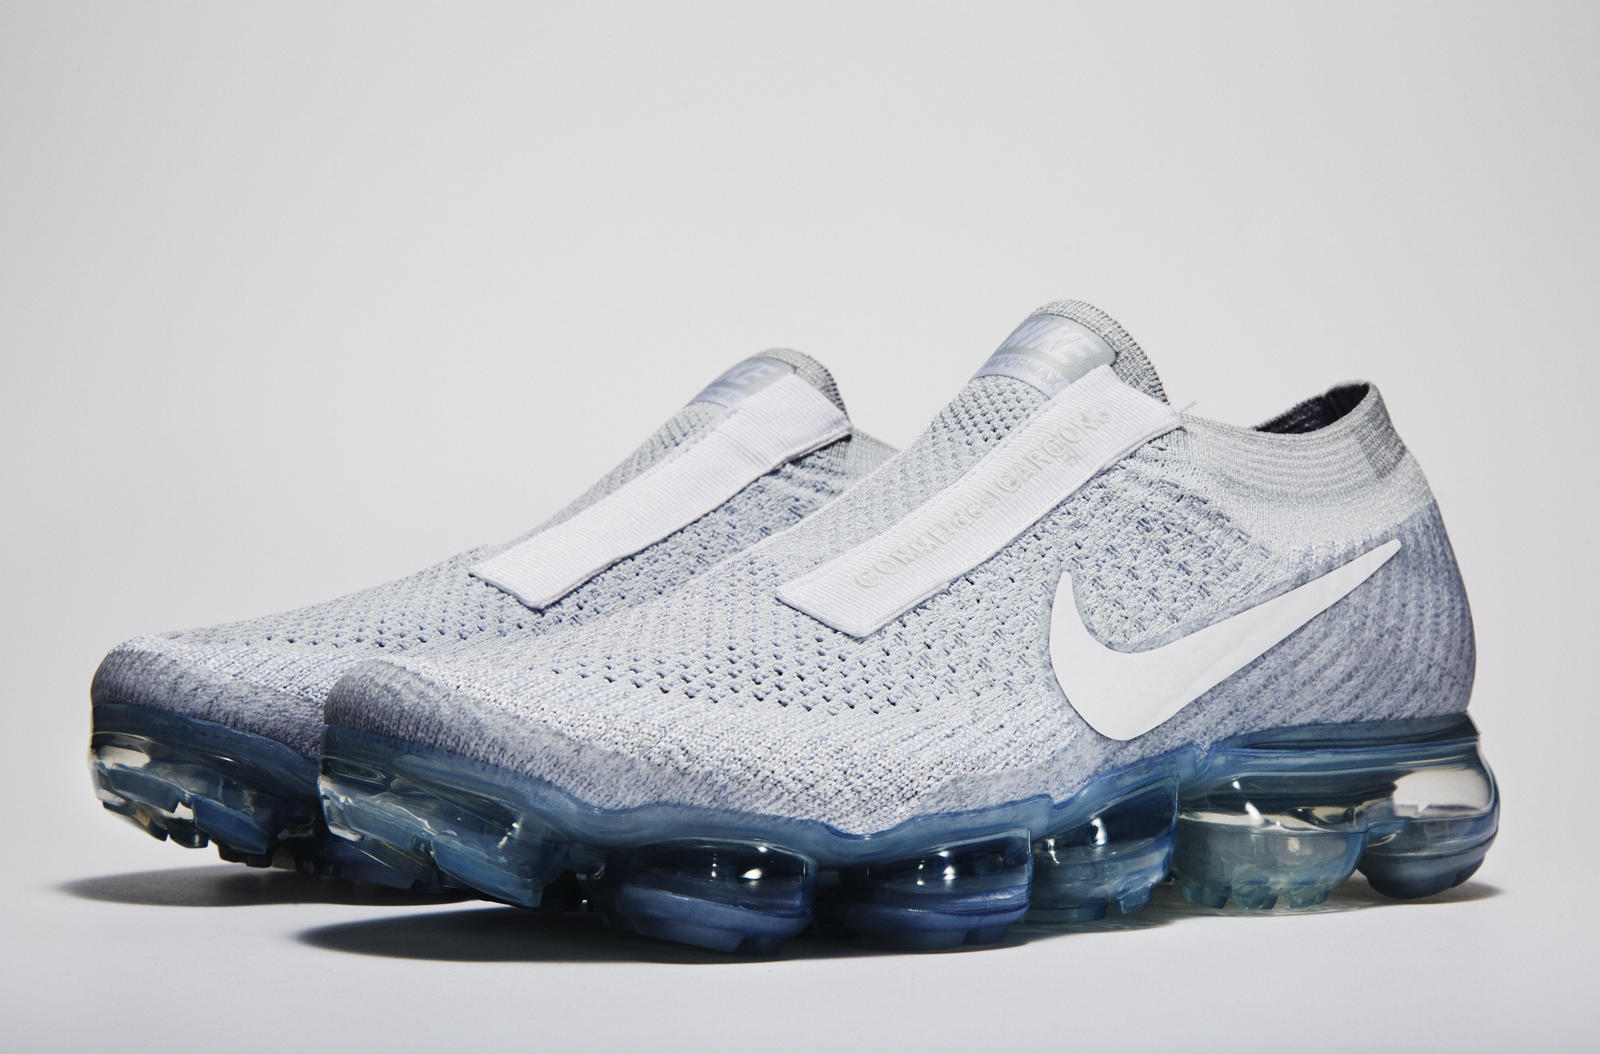 Women's Nike Air Vapormax 'Pale Grey'. Nike SNKRS